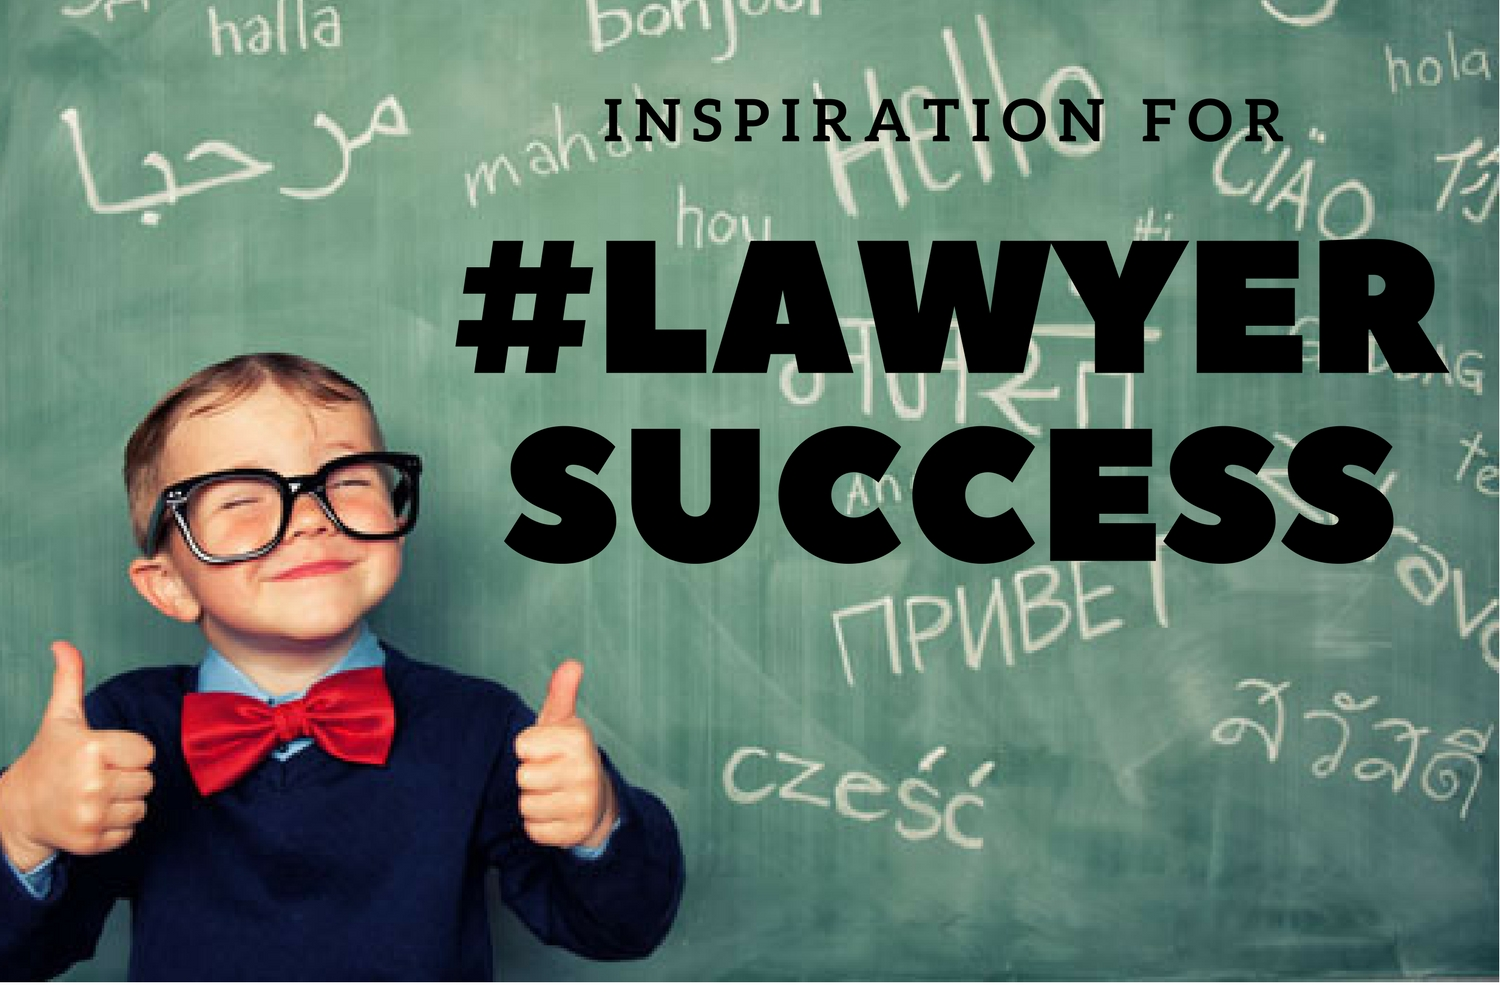 #LawyerSuccess